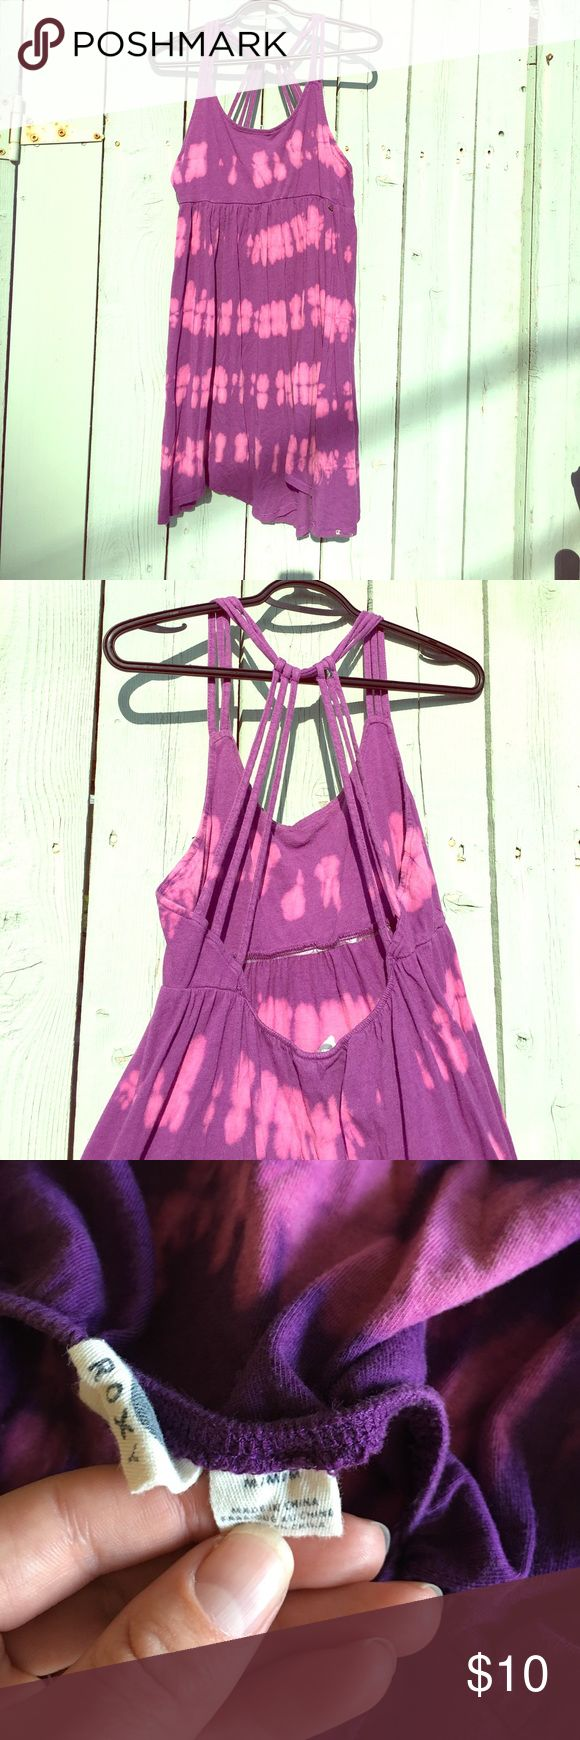 Roxy sundress. Pink & Purple tie dye Roxy sundress or cover up. Pink & Purple tie dye. Cute strappy top.  One strap broke at a festival and I duct taped it back(see photo): easy stitch fix if you can thread a needle unlike me. Dress is in great condition otherwise. Roxy Dresses Mini